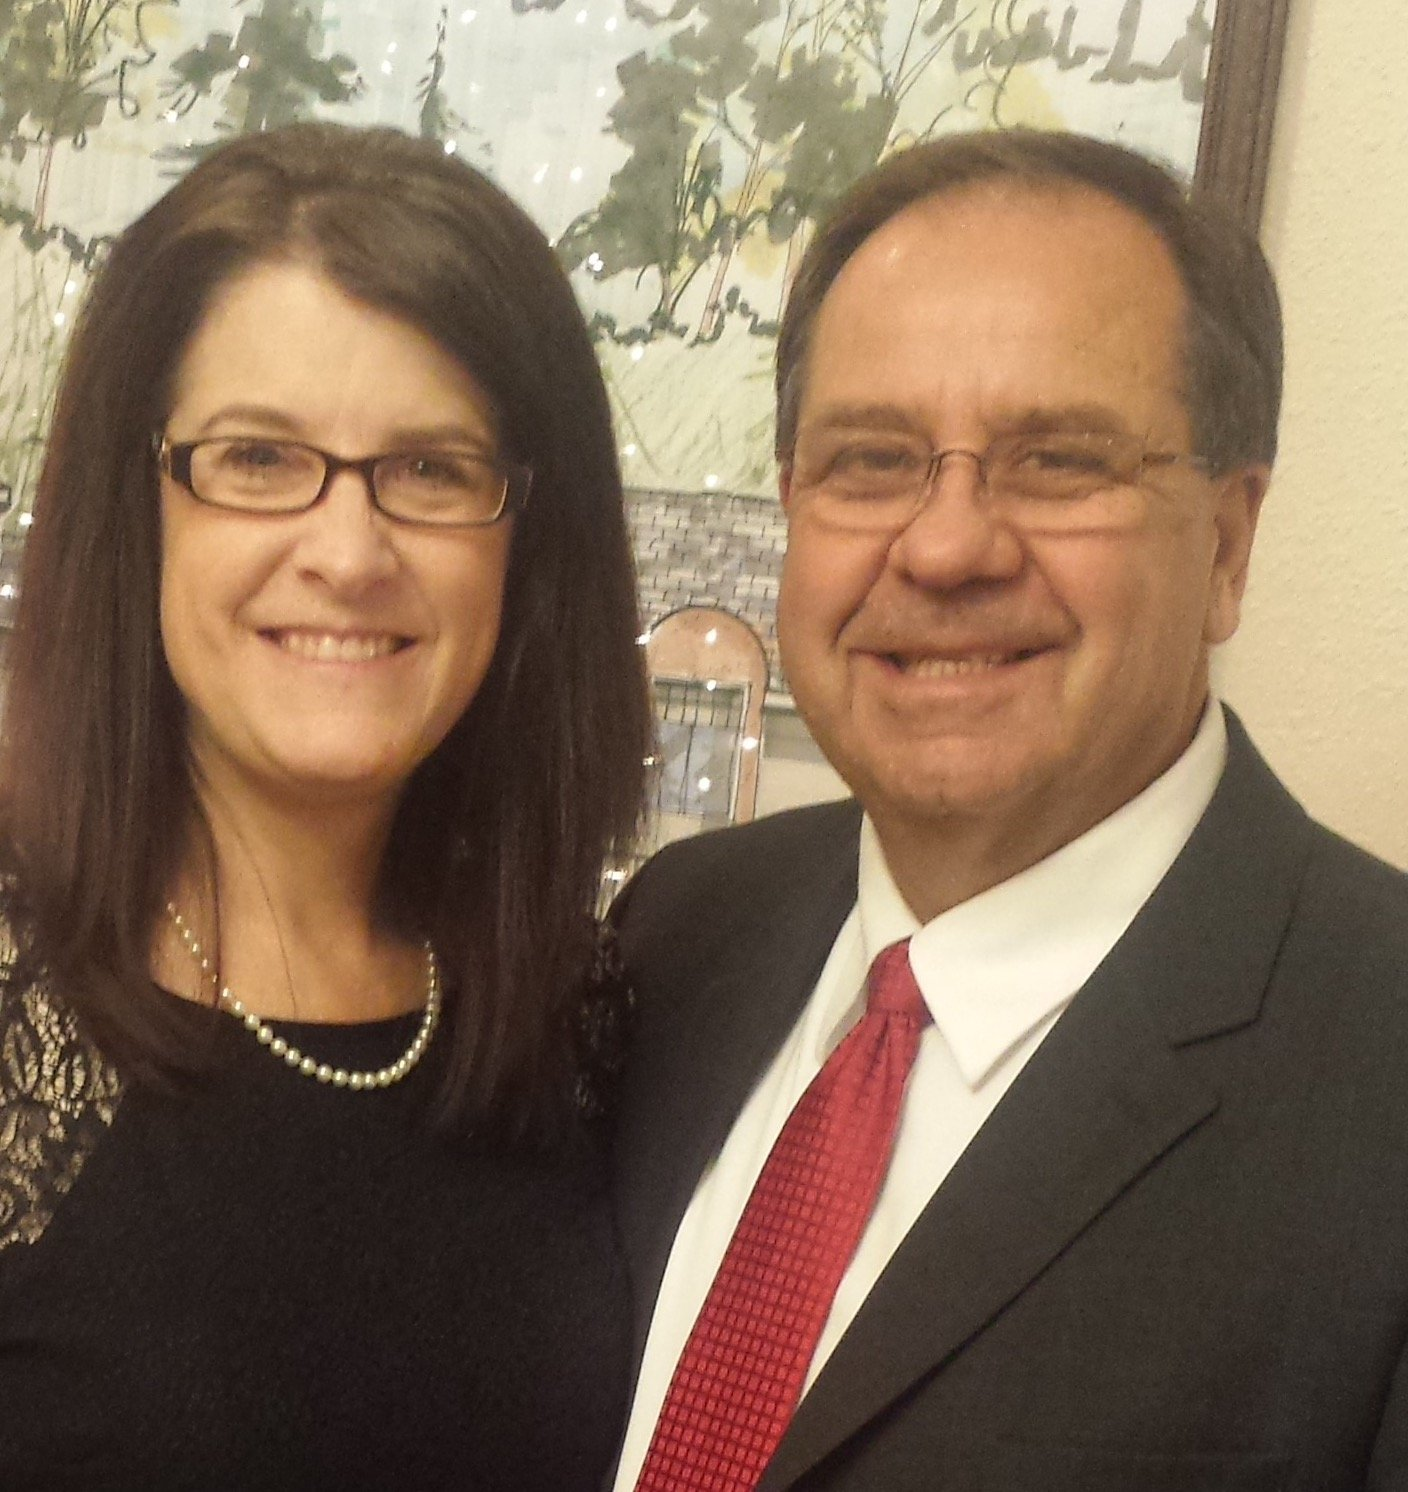 Rick & Cynthia Wilder : Our Pastor and his Wife